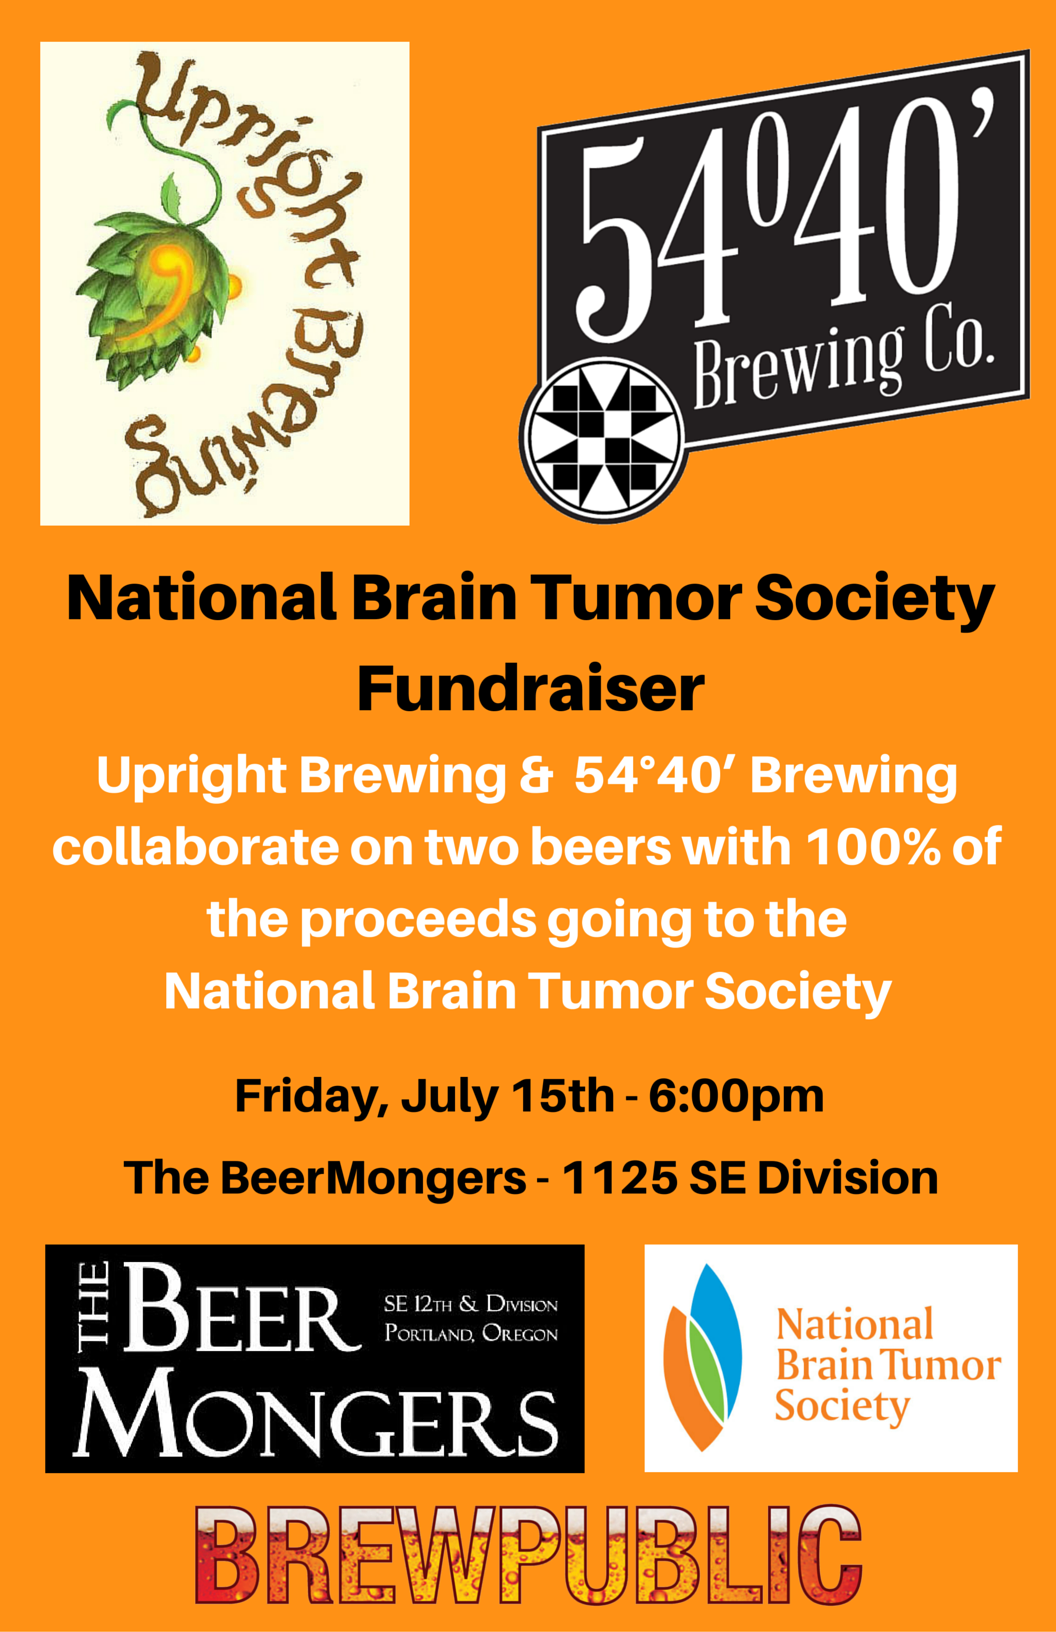 Upright Brewing & 54 40 Brewing and The BeerMongers National Brain Tumor Society Fundraiser